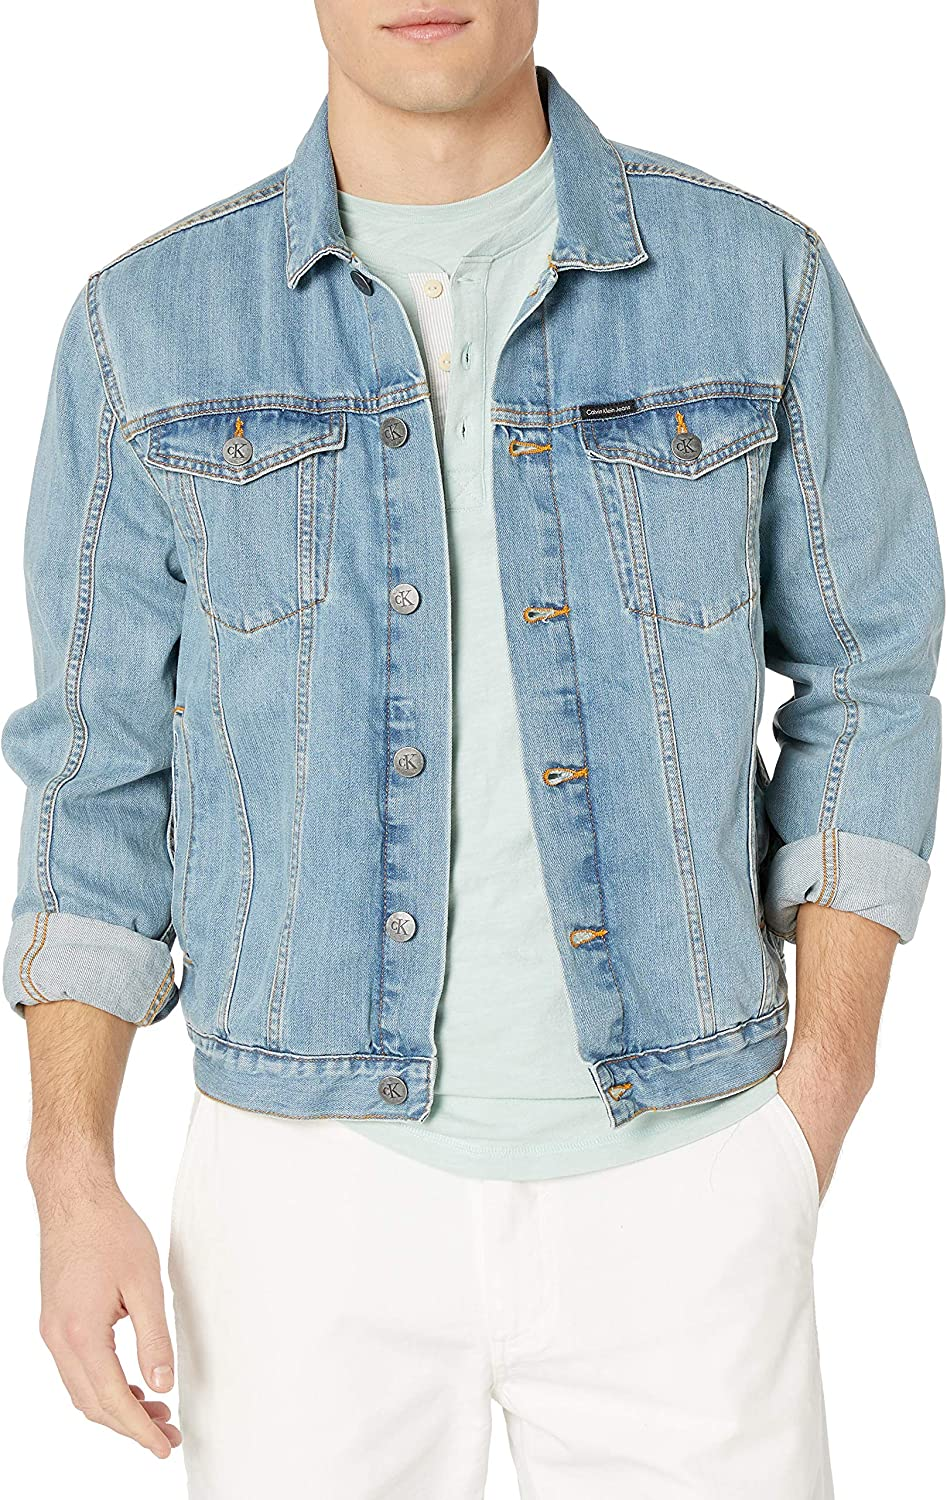 Calvin Klein Men's Denim-Trucker Jacket, Light Wash